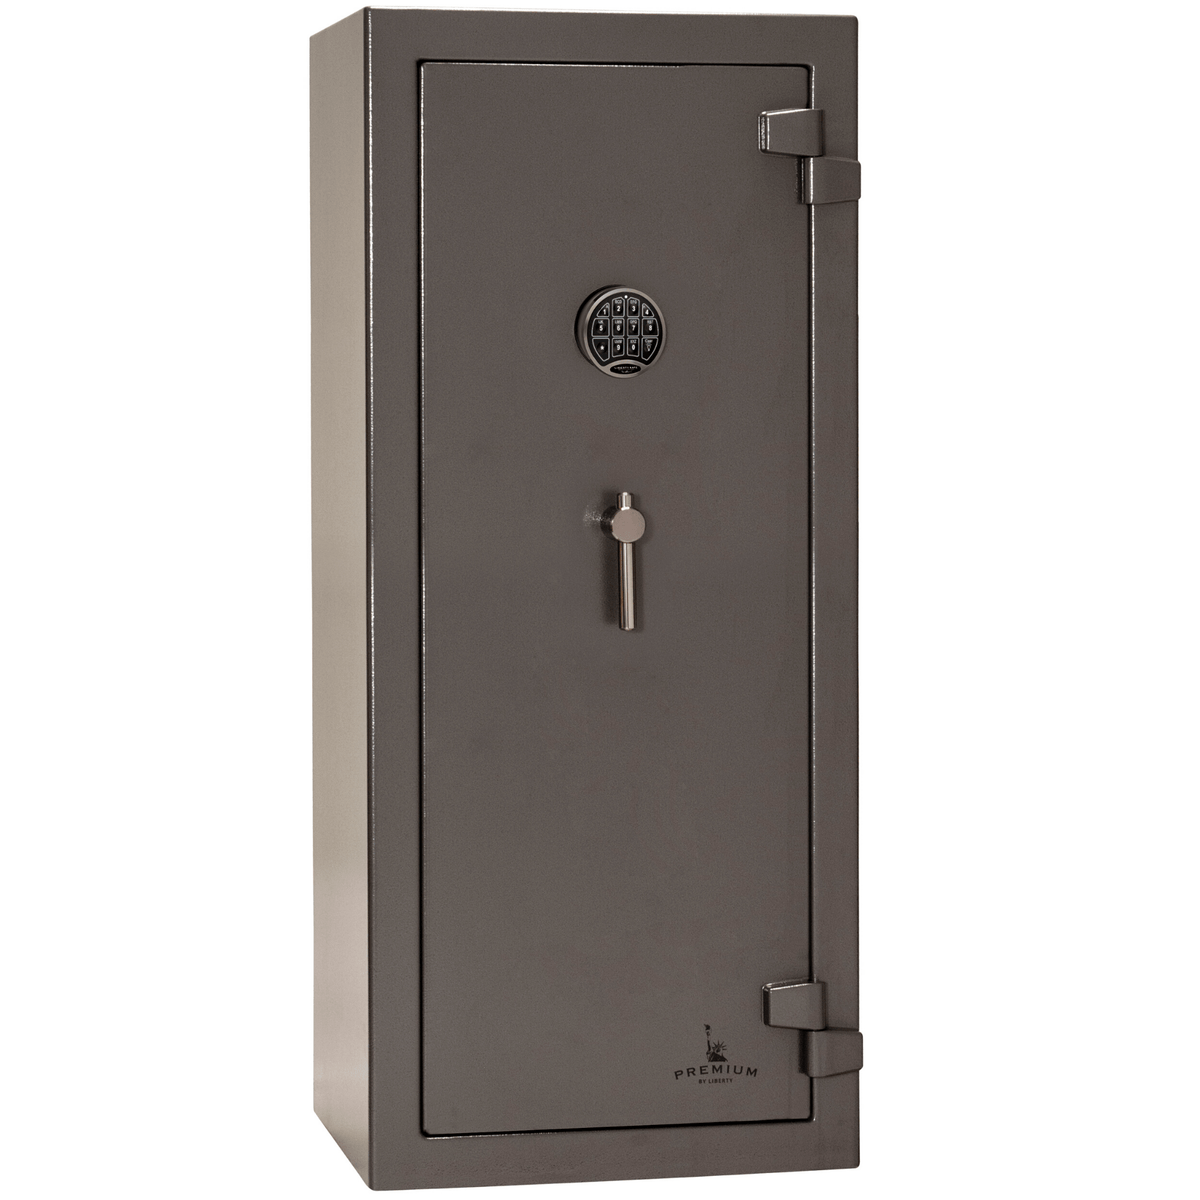 "Premium Home | 17 | 90 Minute Fire Protection | Gray | Electronic Lock | Dimensions: 59""(H) x 24""(W) x 22.5""(D)"